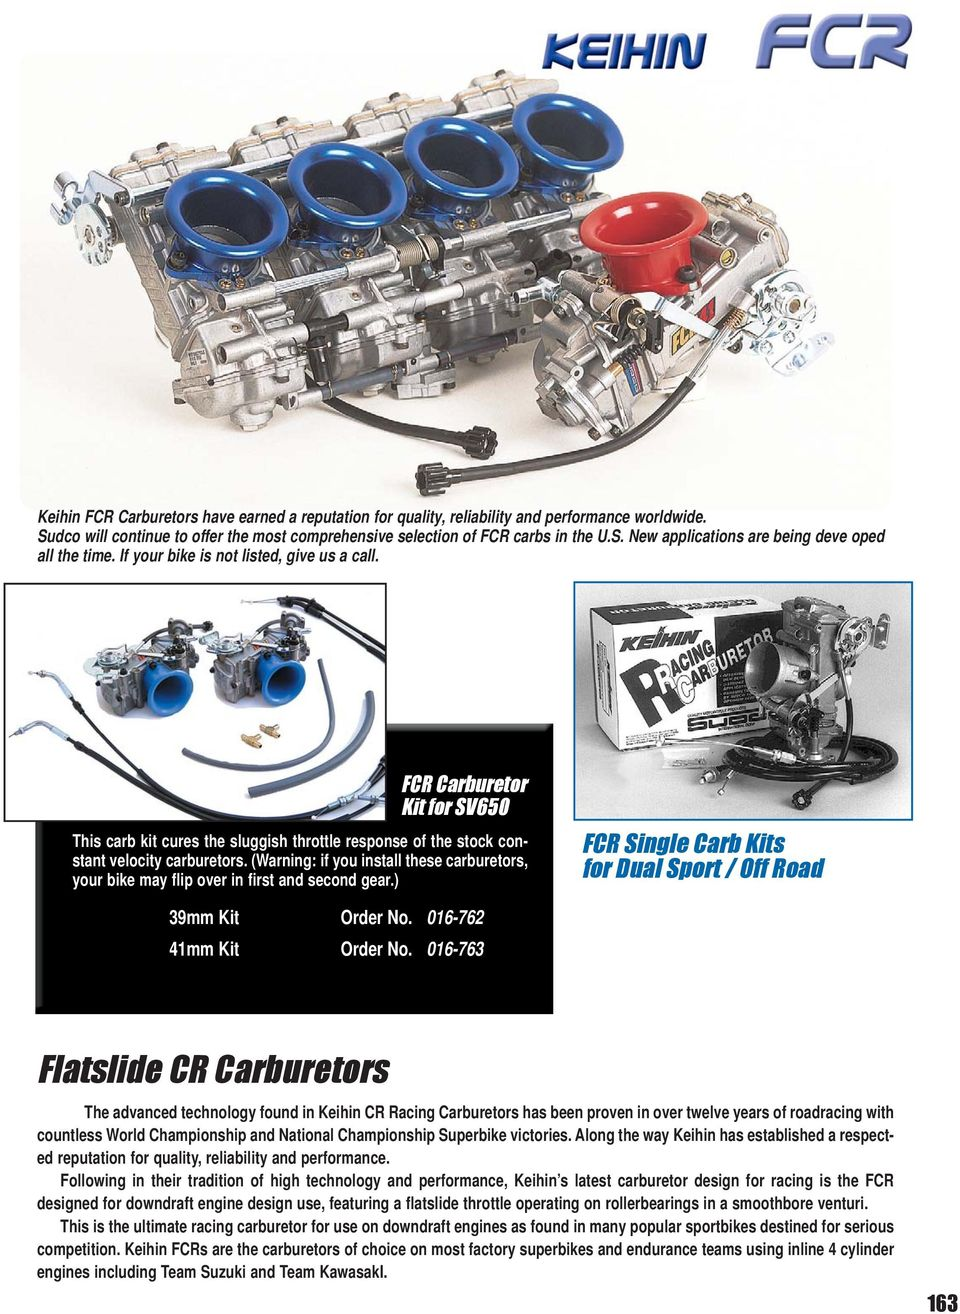 Flatslide Cr Carburetors Recommended Carburetor Size For Engine Sportster Wiring Diagram Further Kawasaki Keihin Cv Warning If You Install These Your Bike May Flip Over In First